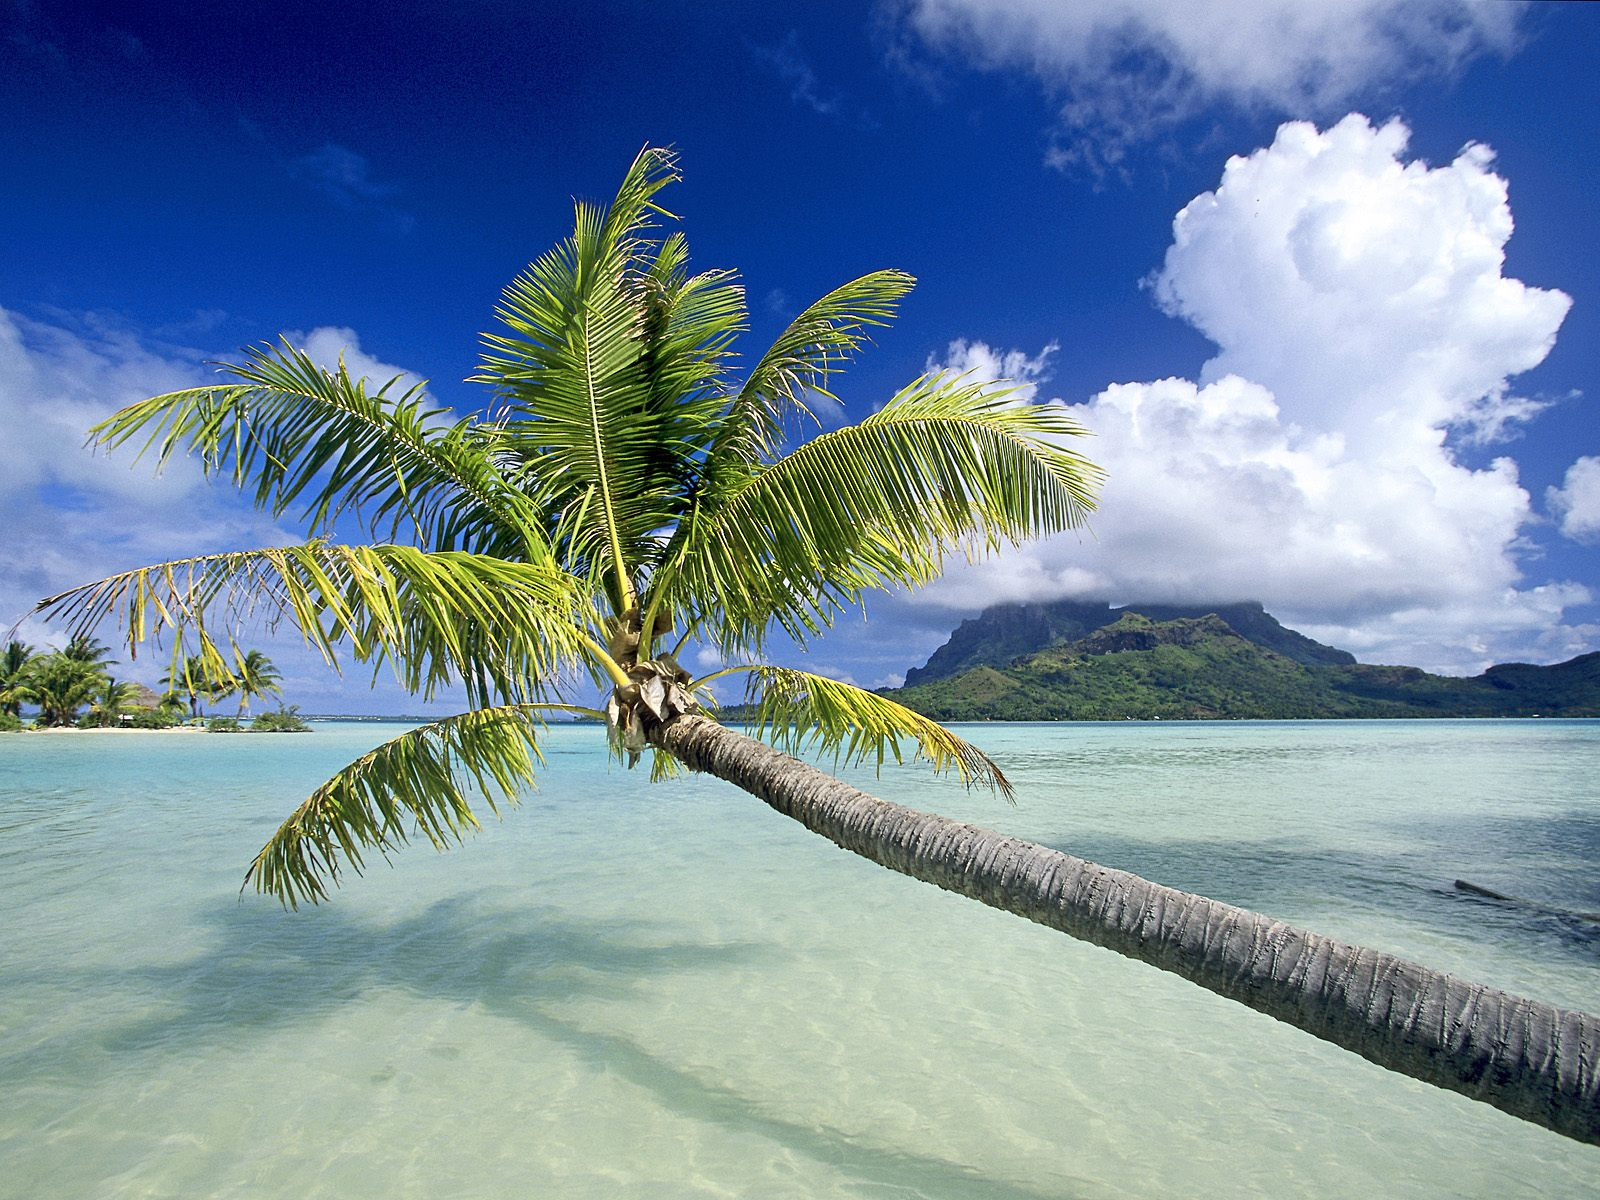 Tropical Island Resort Beaches: World Visits: Tropical Island Beach Wallpaper Free Review